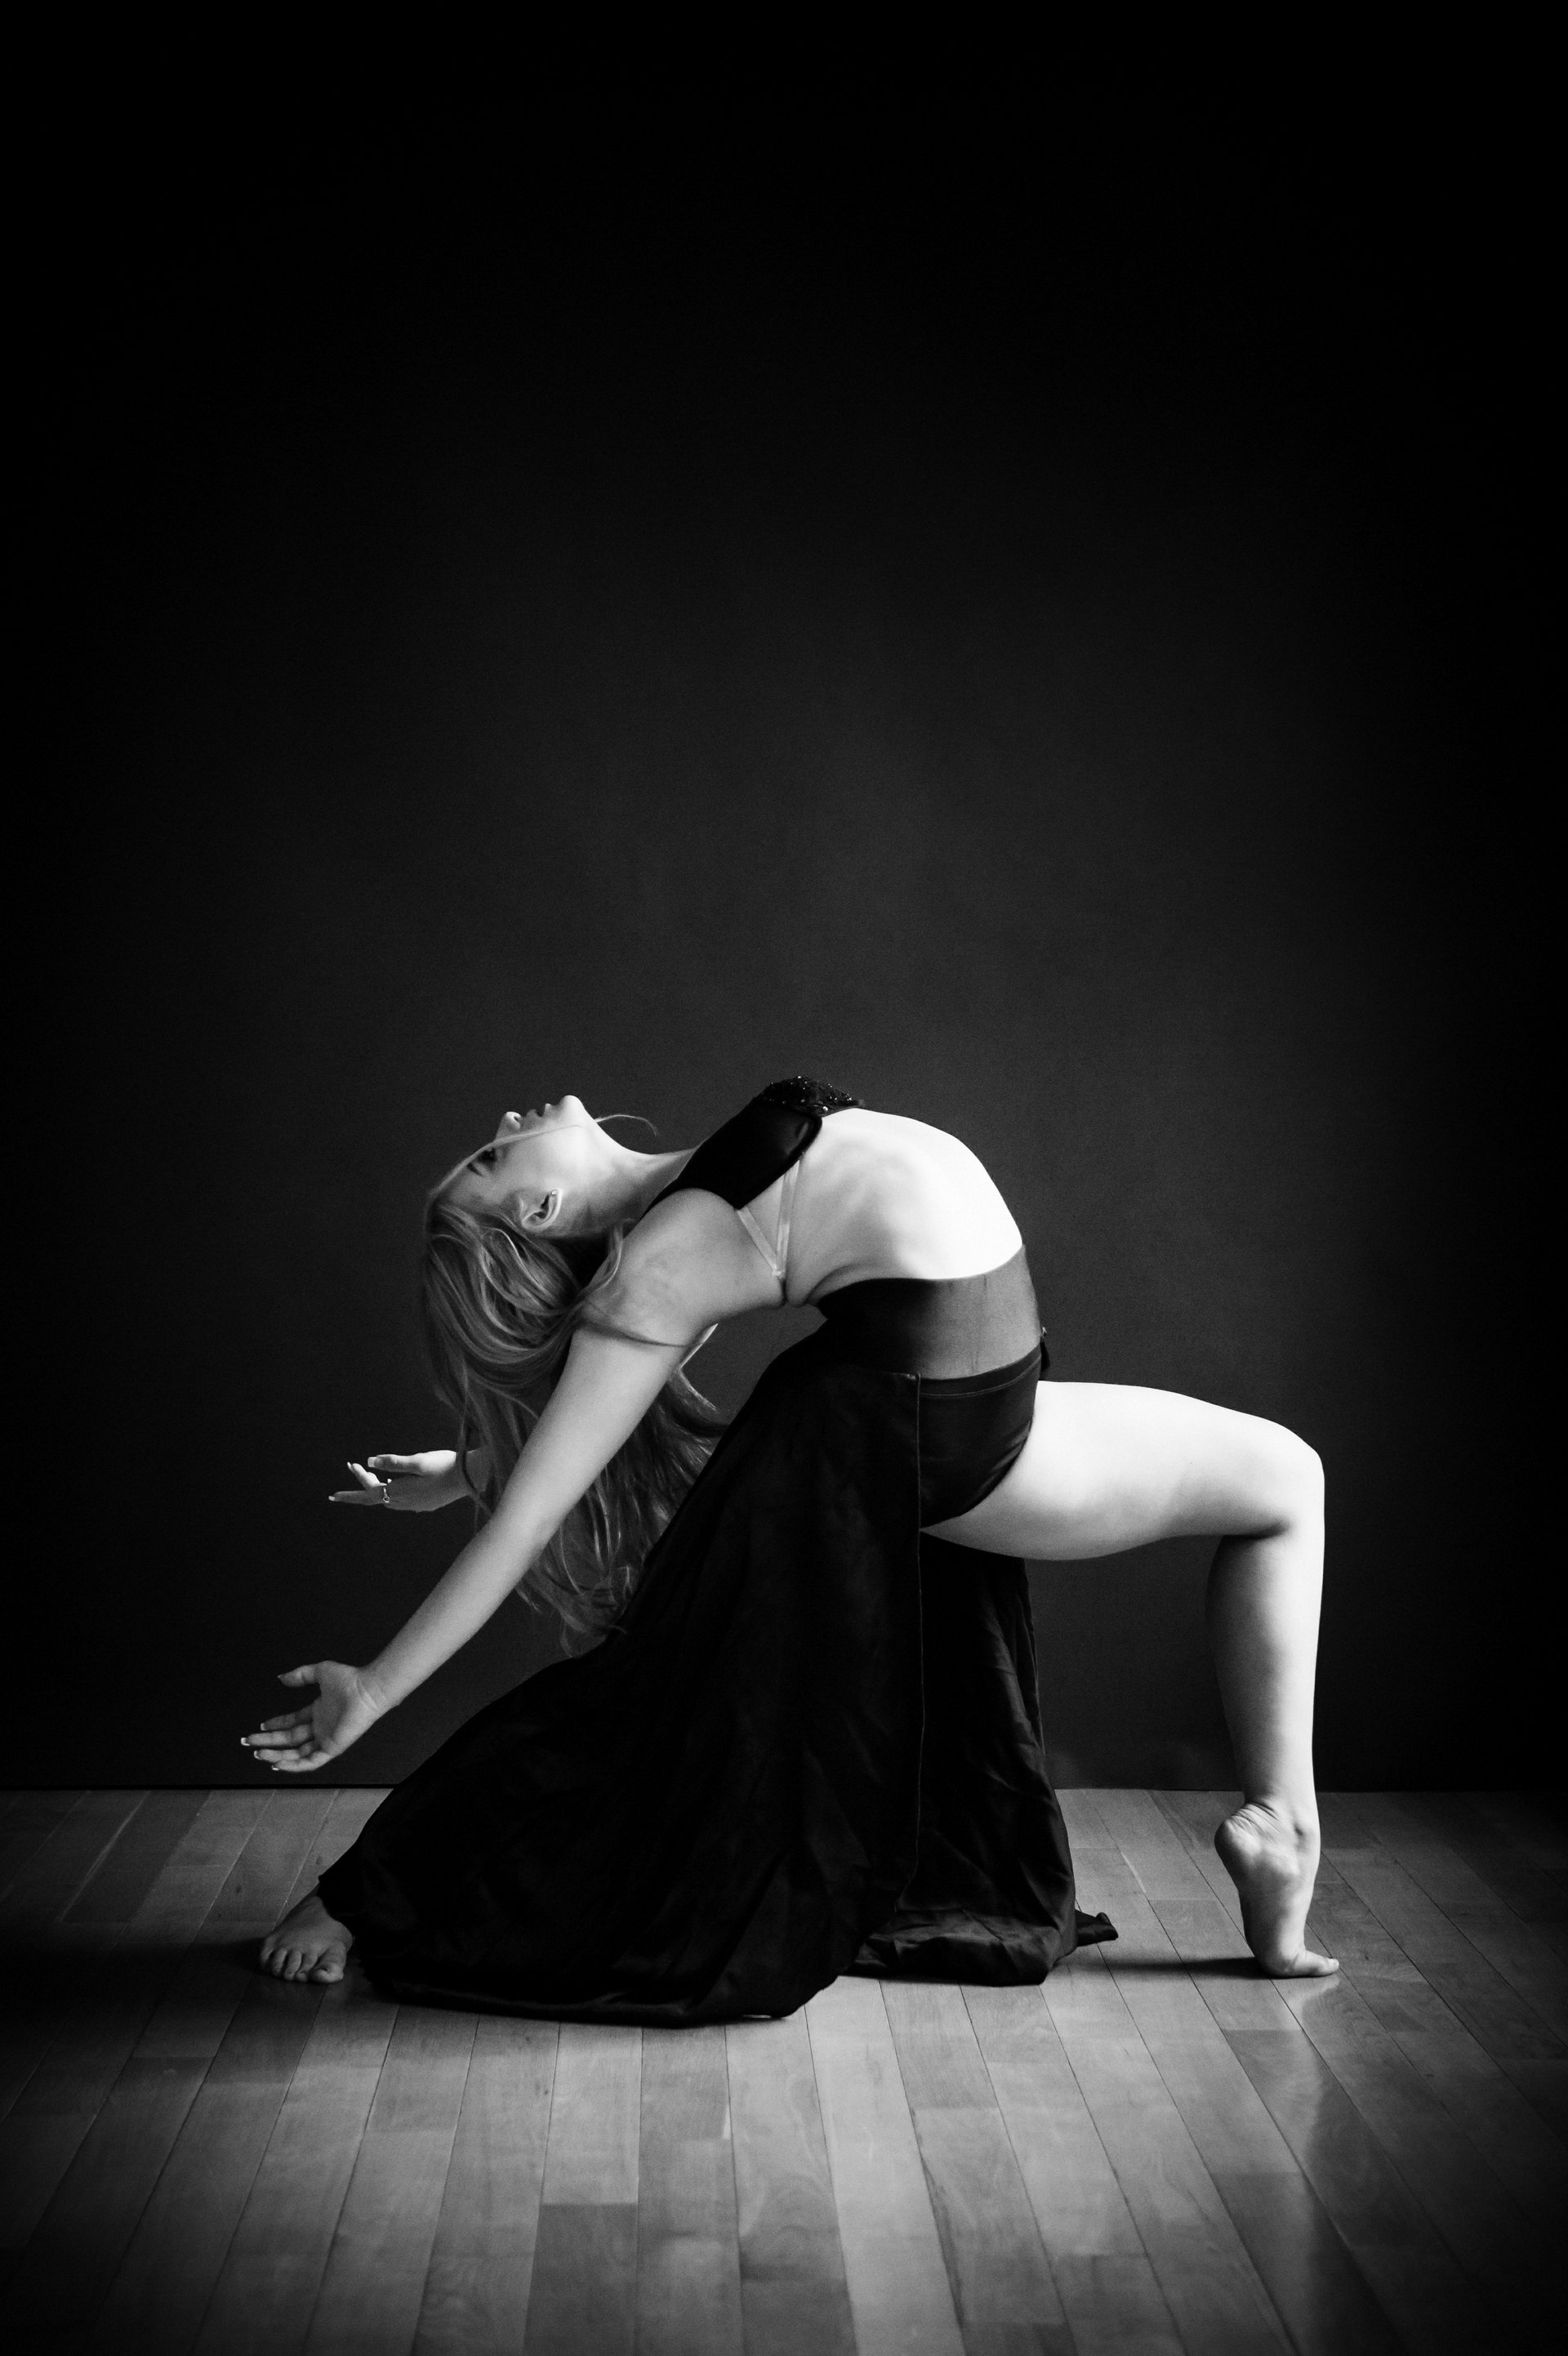 nEO_IMG_Xing Photography Soul of Dance - Haley-16-BW.jpg